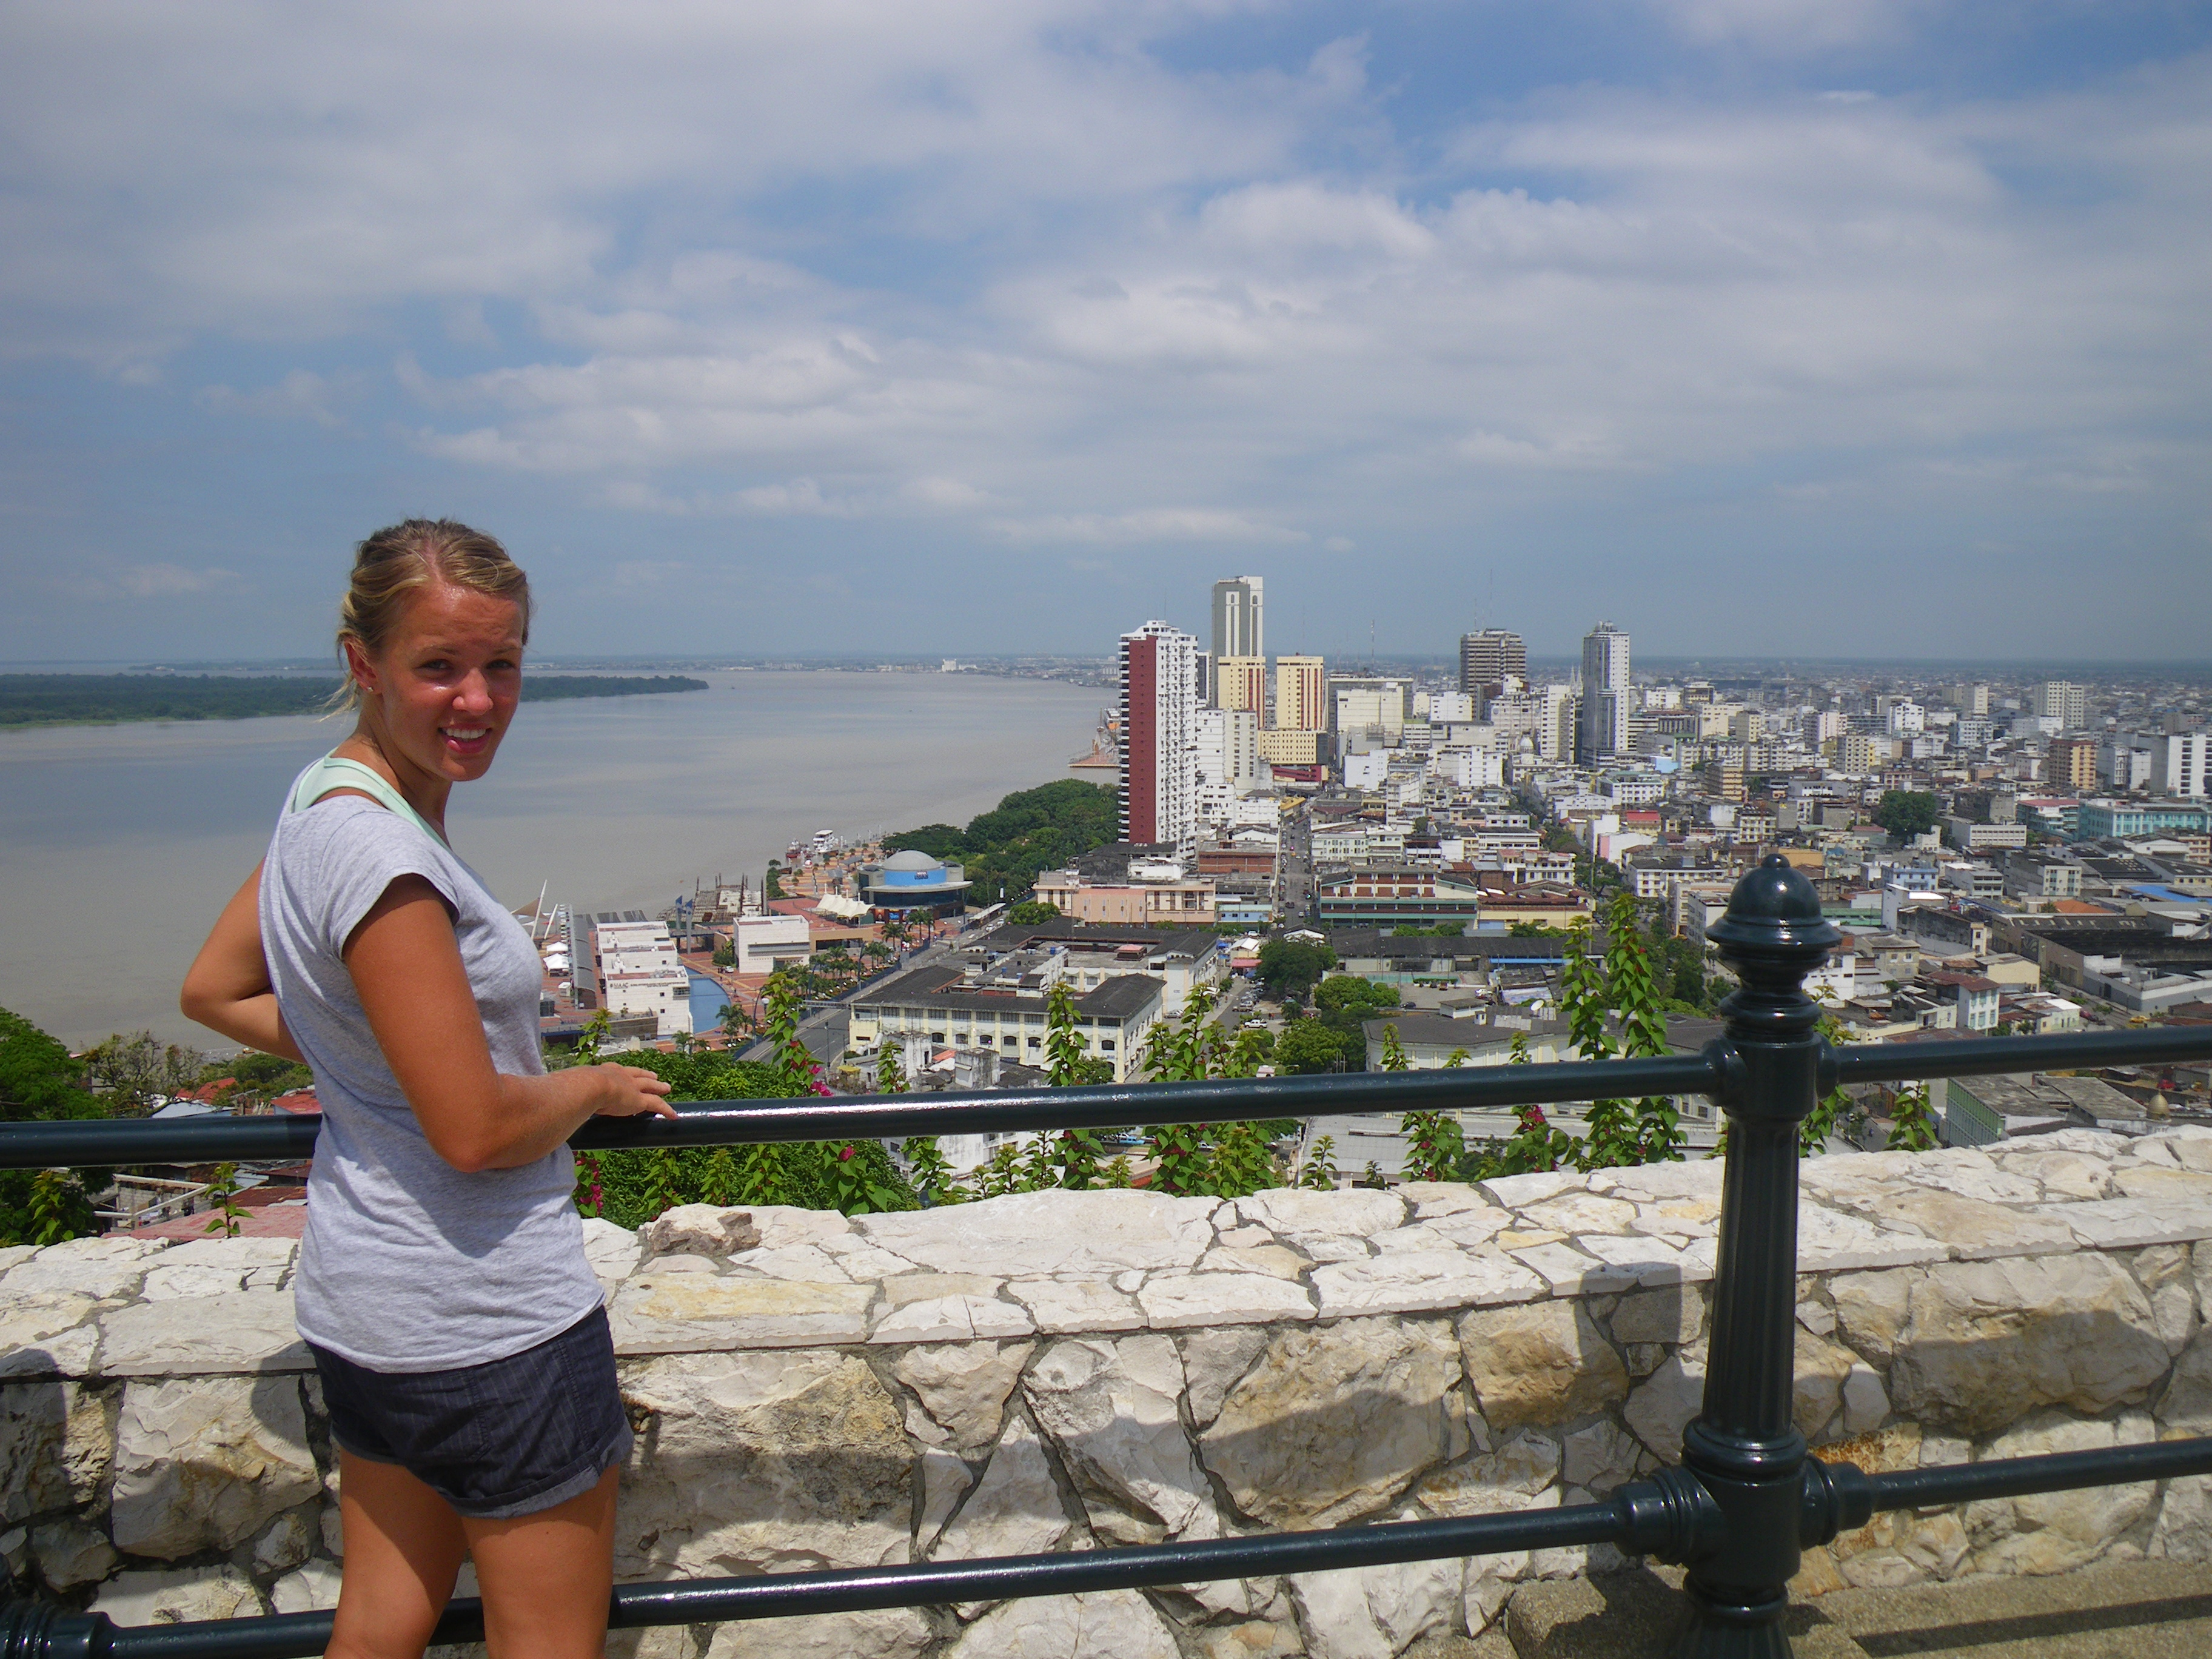 guayaquil tourism The warm port city of guayaquil welcomes international visitors to come and enjoy a wide variety of must-visit attractions.